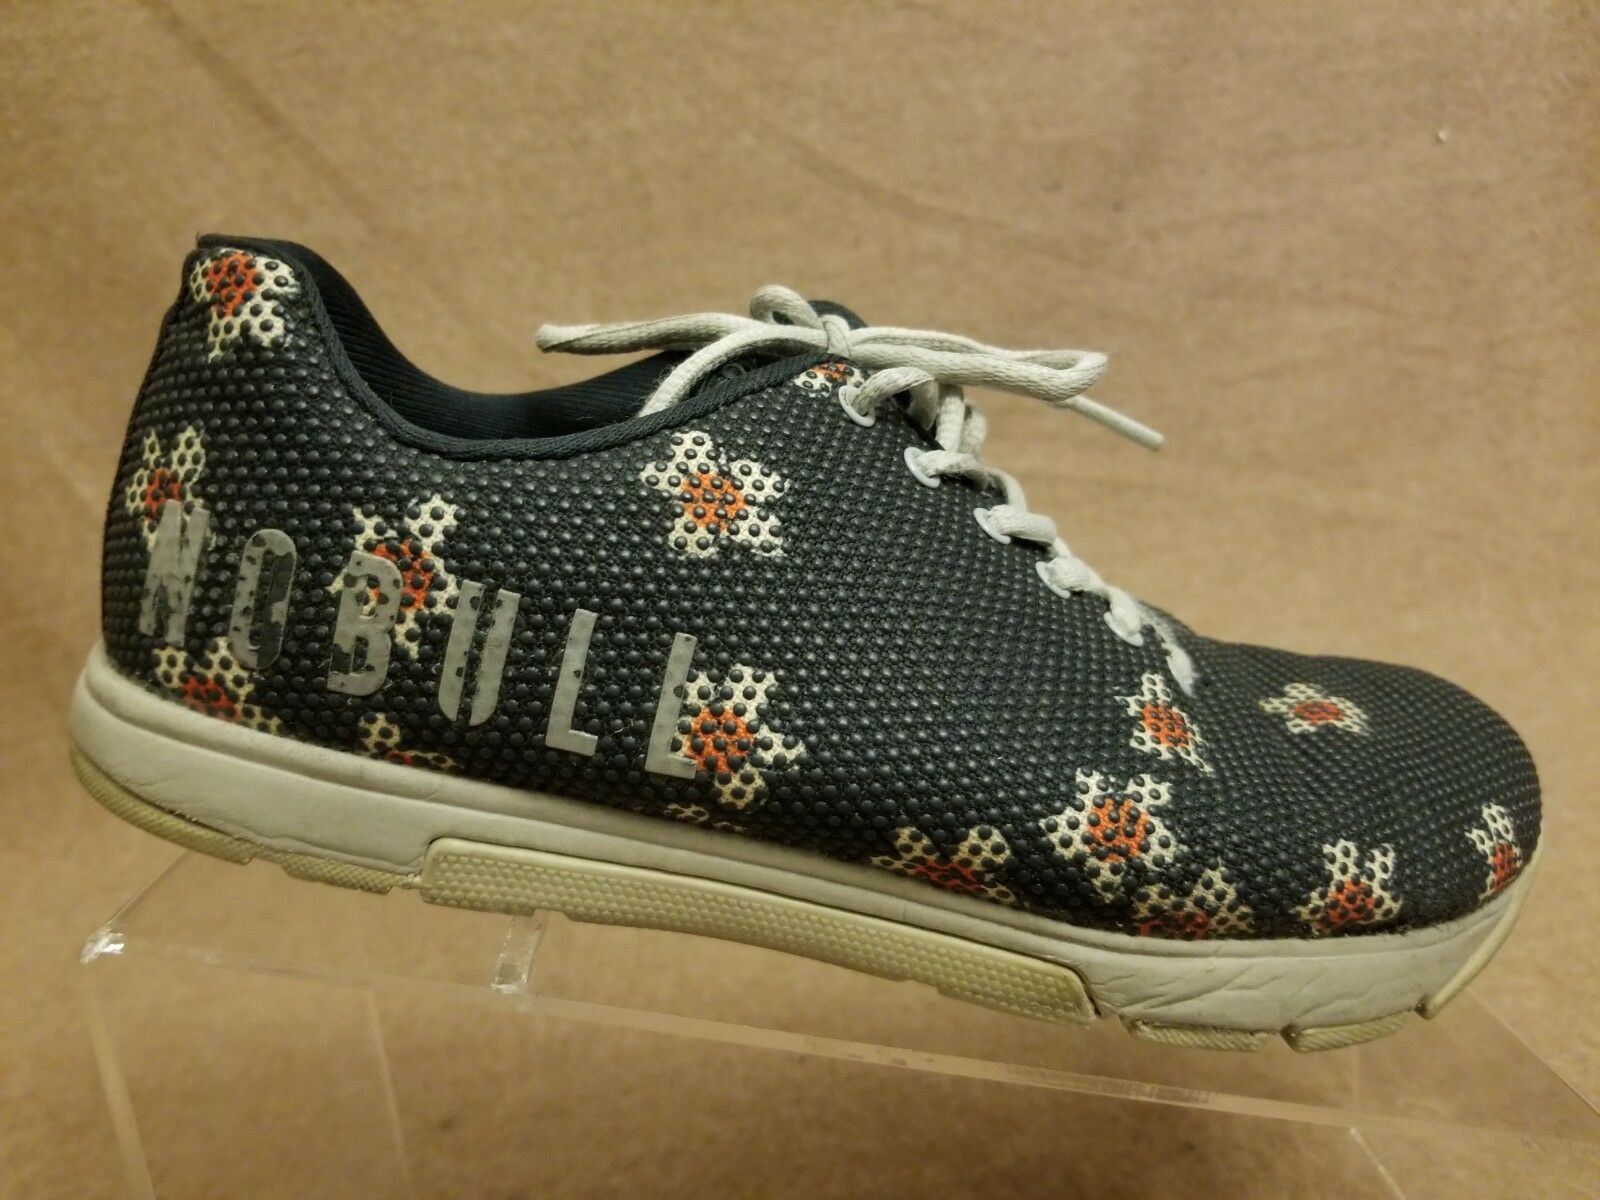 Nobull Unisex Blue Floral Superfabric Trainer Fashion Sneakers Sz Men 7.5 Wo's 9